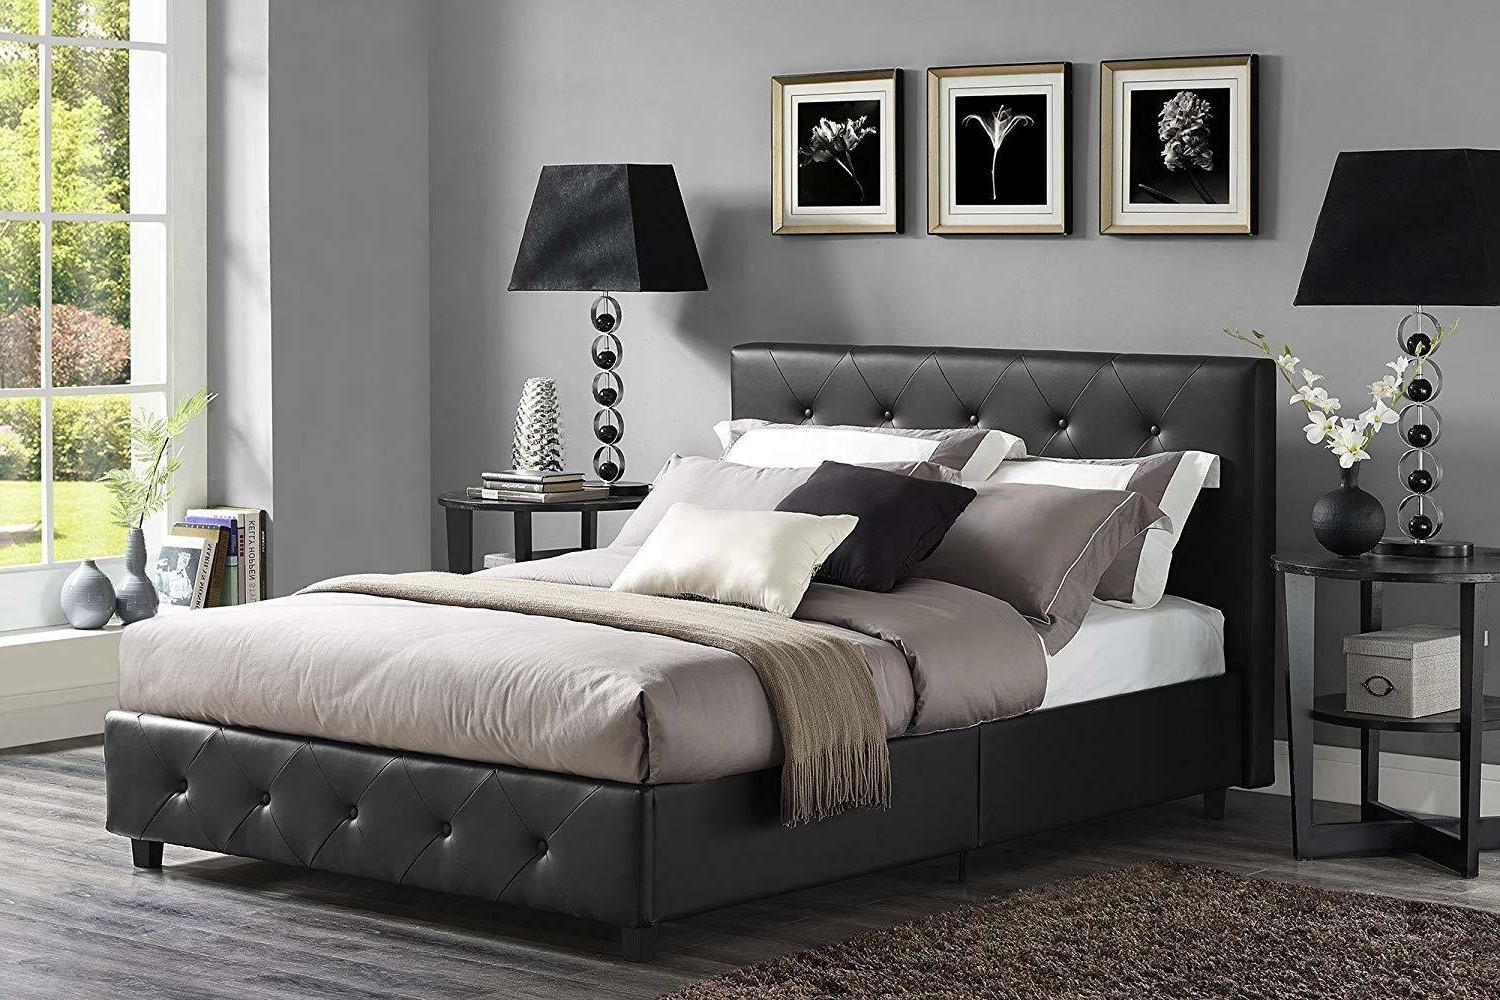 Upholstered Bed with Signature Sleep